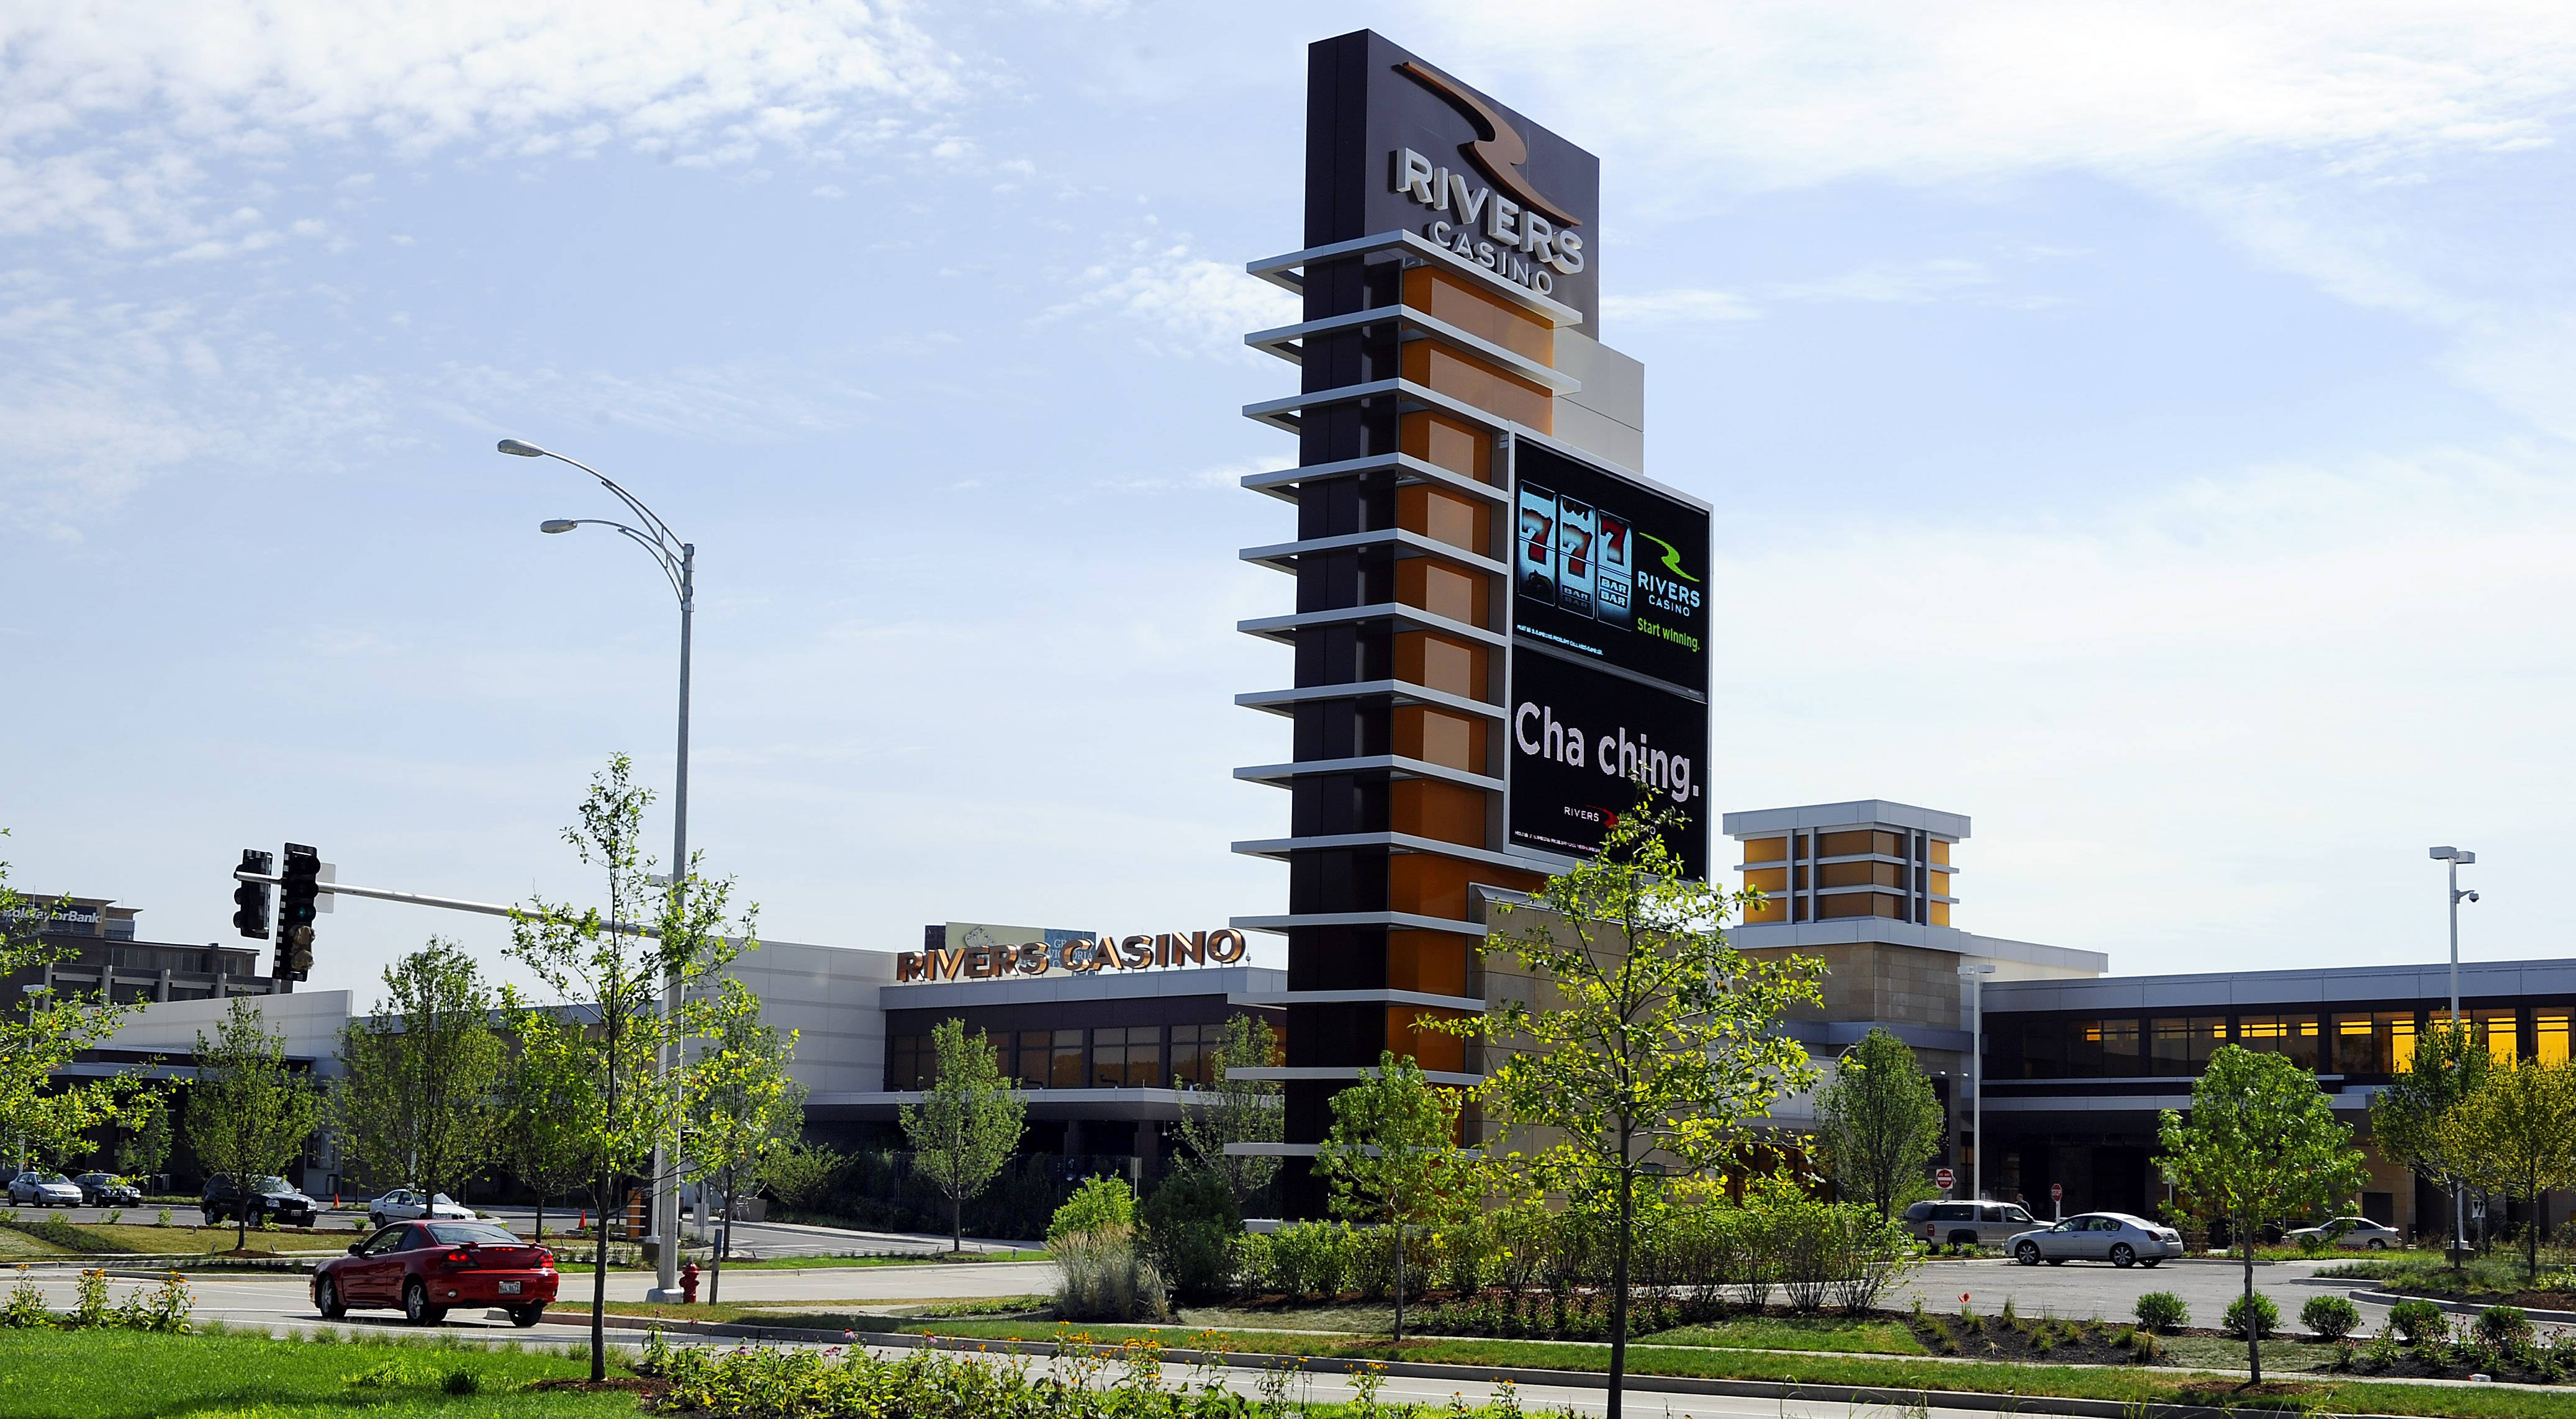 Agreement: Rivers Casino can't threaten workers wanting union